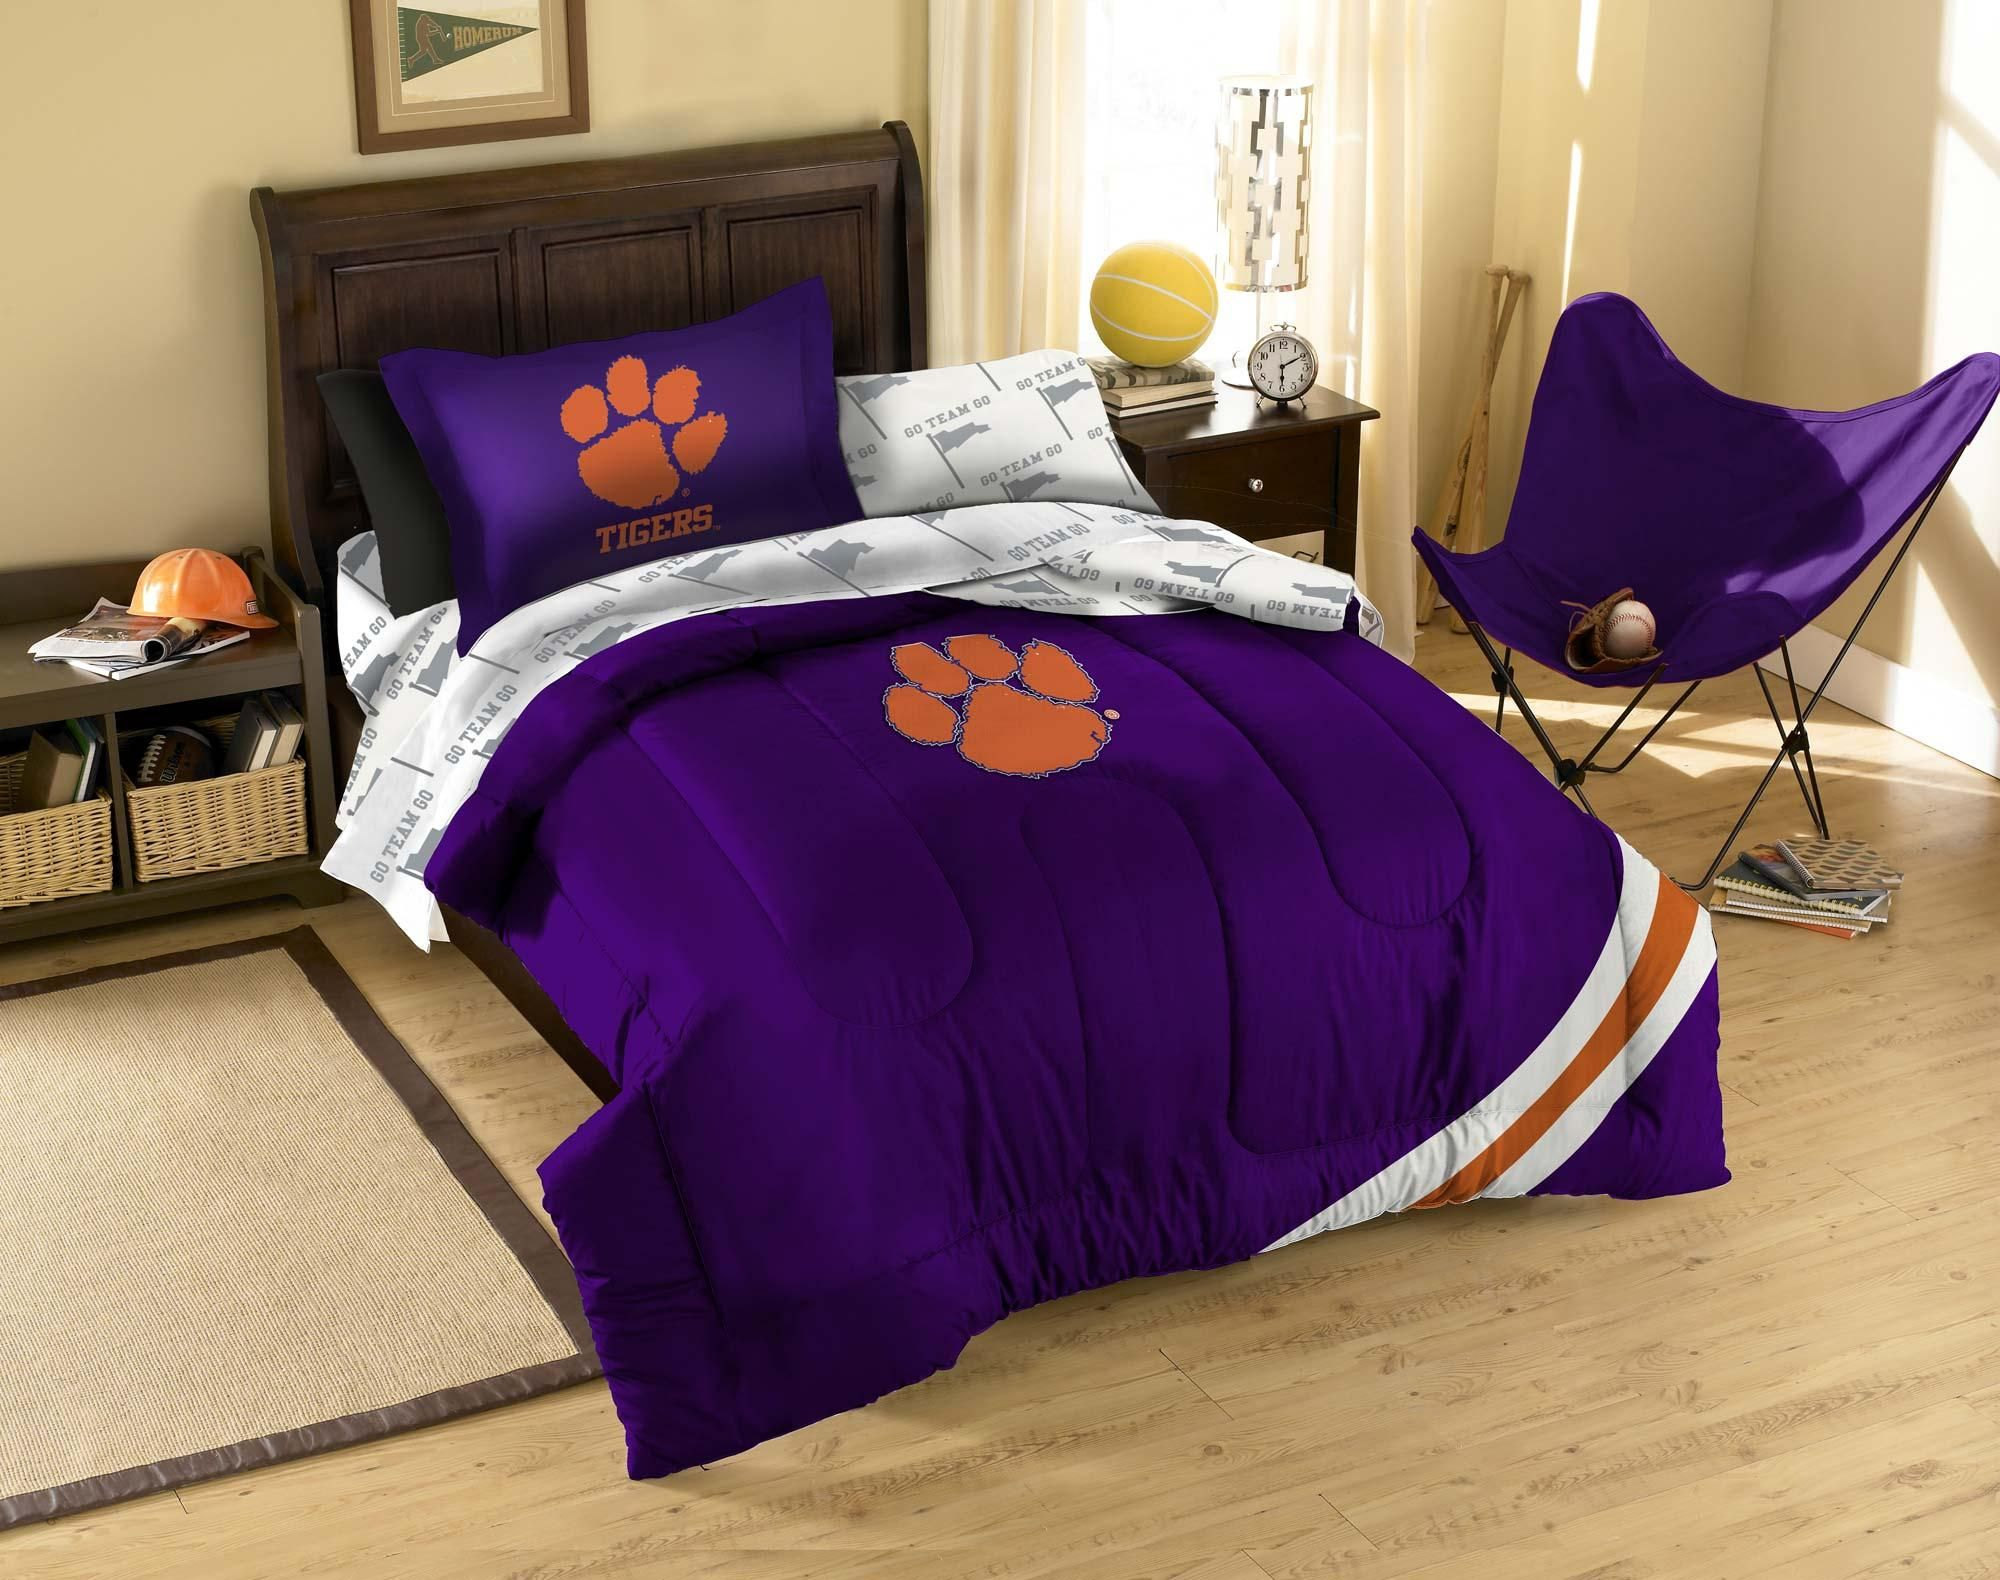 Obedding The Northwest Company Clemson Twin Bedding Set 5pc Ncaa Tigers College